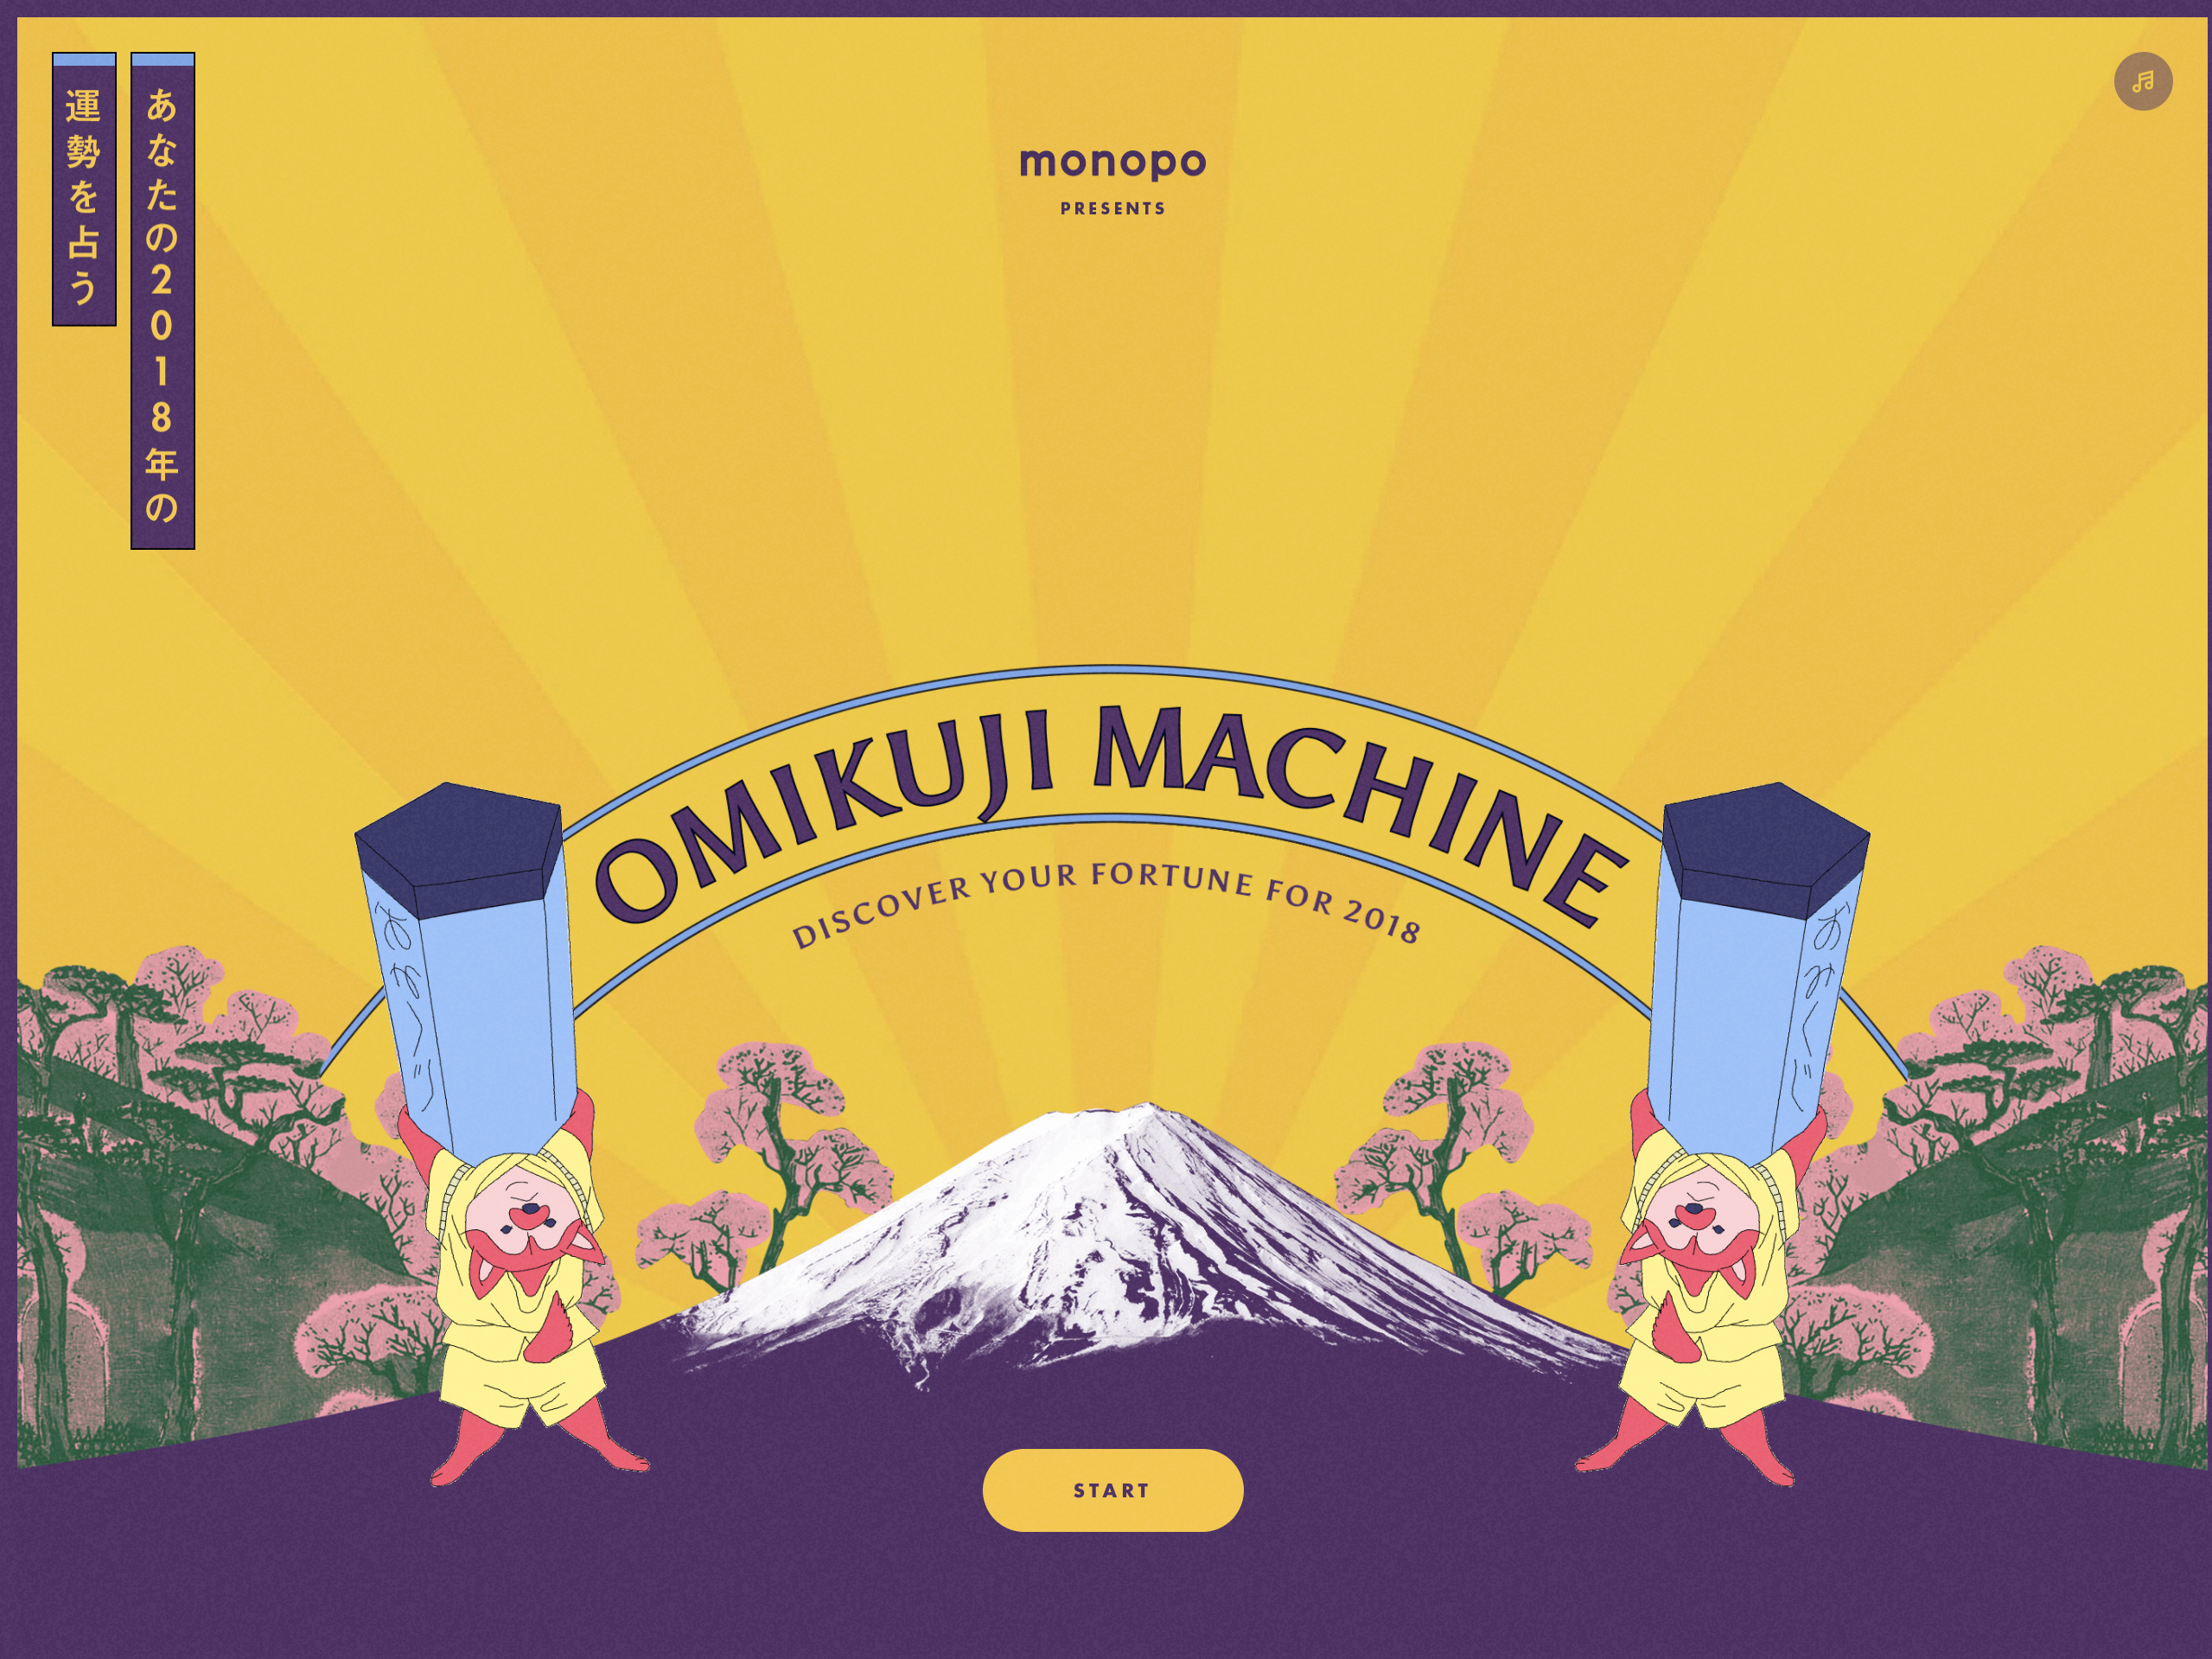 OMIKUJI MACHINE | presented by monopo